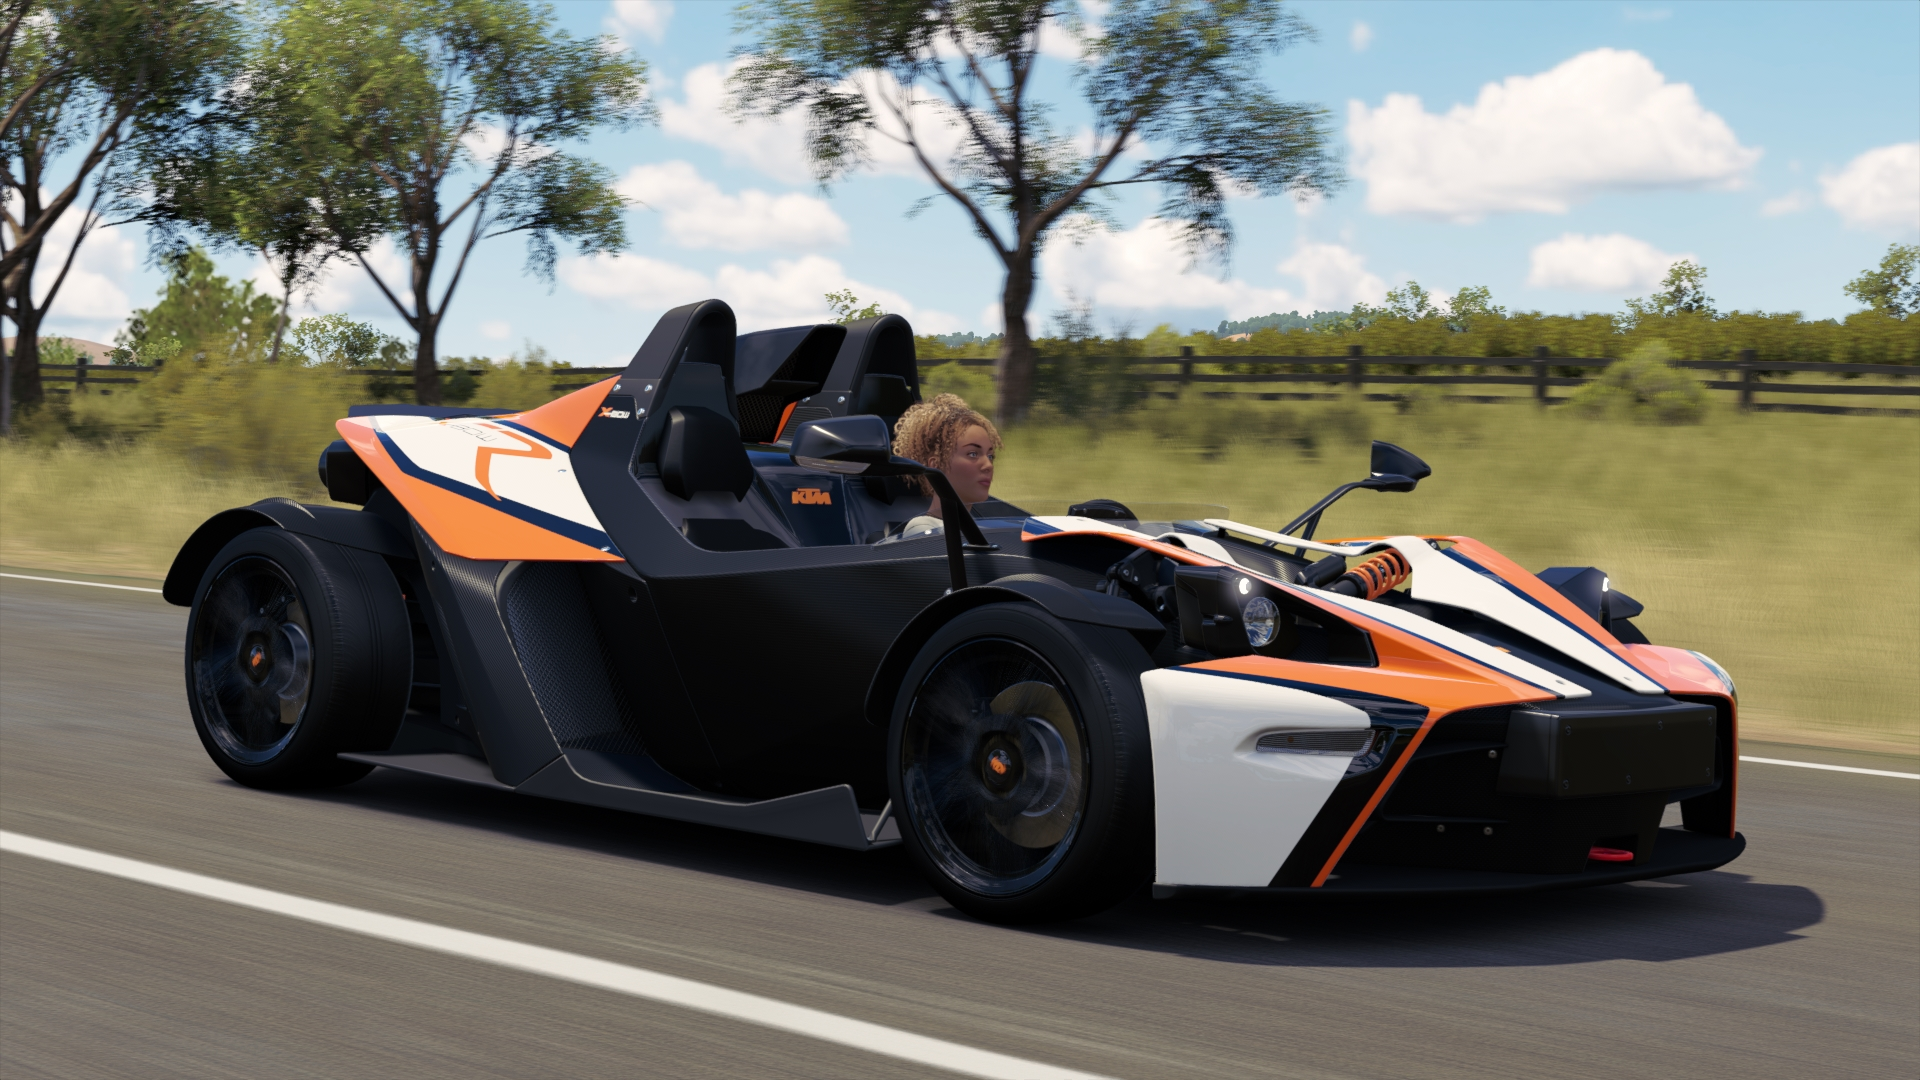 ktm x bow r forza motorsport wiki fandom powered by wikia. Black Bedroom Furniture Sets. Home Design Ideas